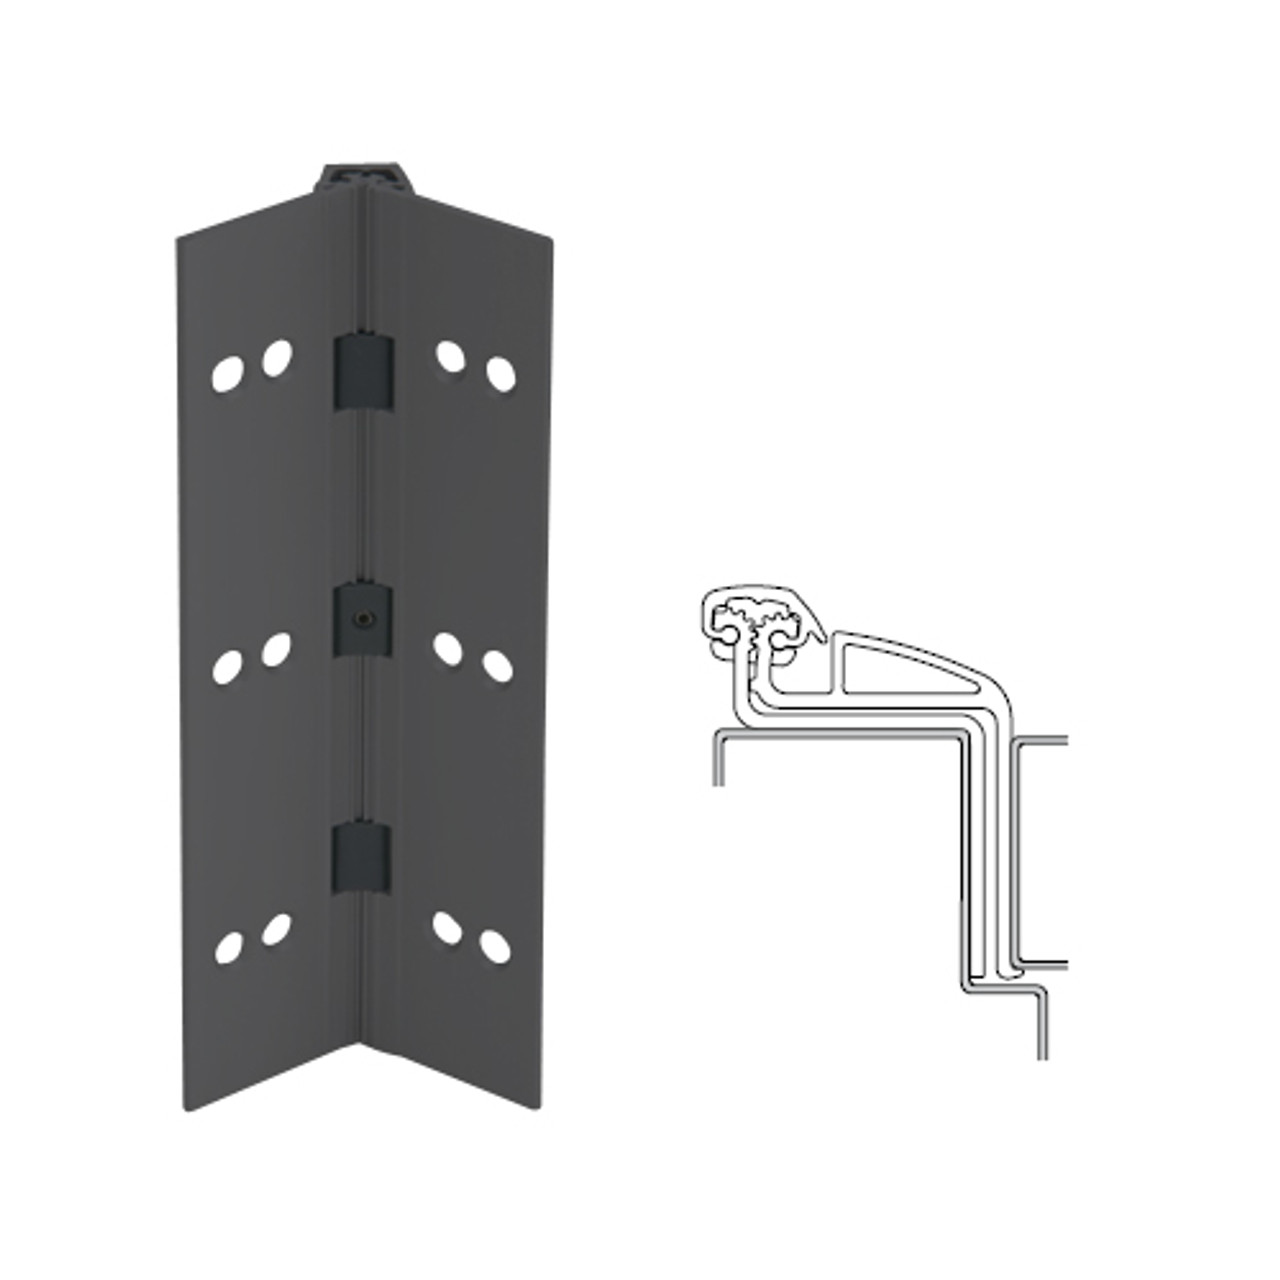 041XY-315AN-83-WD IVES Full Mortise Continuous Geared Hinges with Wood Screws in Anodized Black